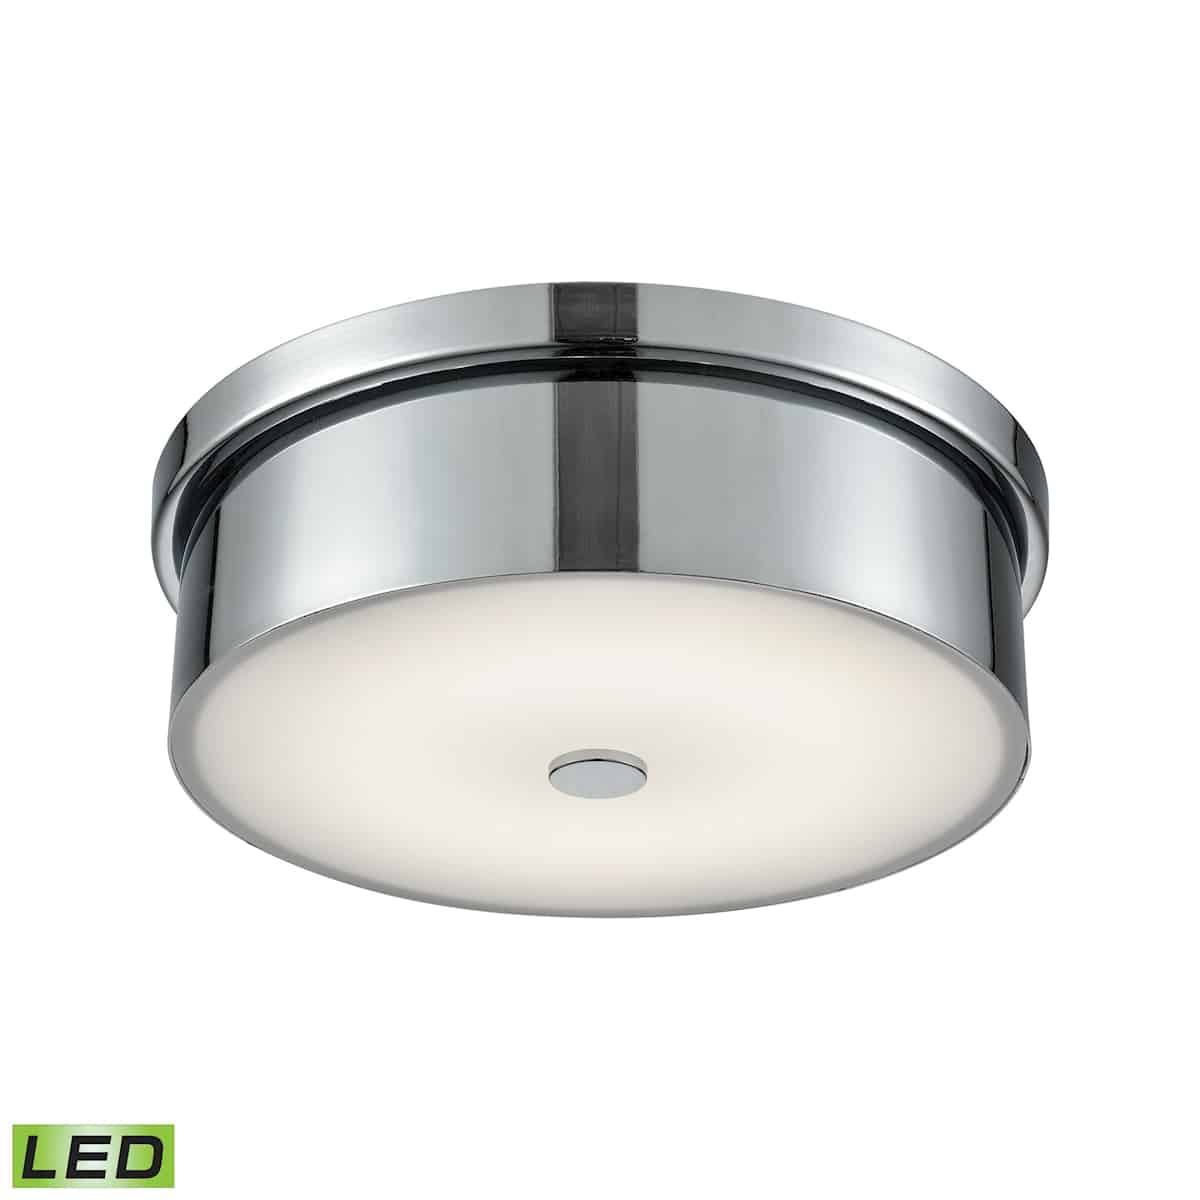 EL-FML4925-10-15_Sharp geometrics are part of this season's thematic core. Our Towne Series Flush Mount is as sharp as round can be. Boasts minimally articulated Chrome or Satin Nickel metalwork and cool Opal glass diffusion. Indoor use only.